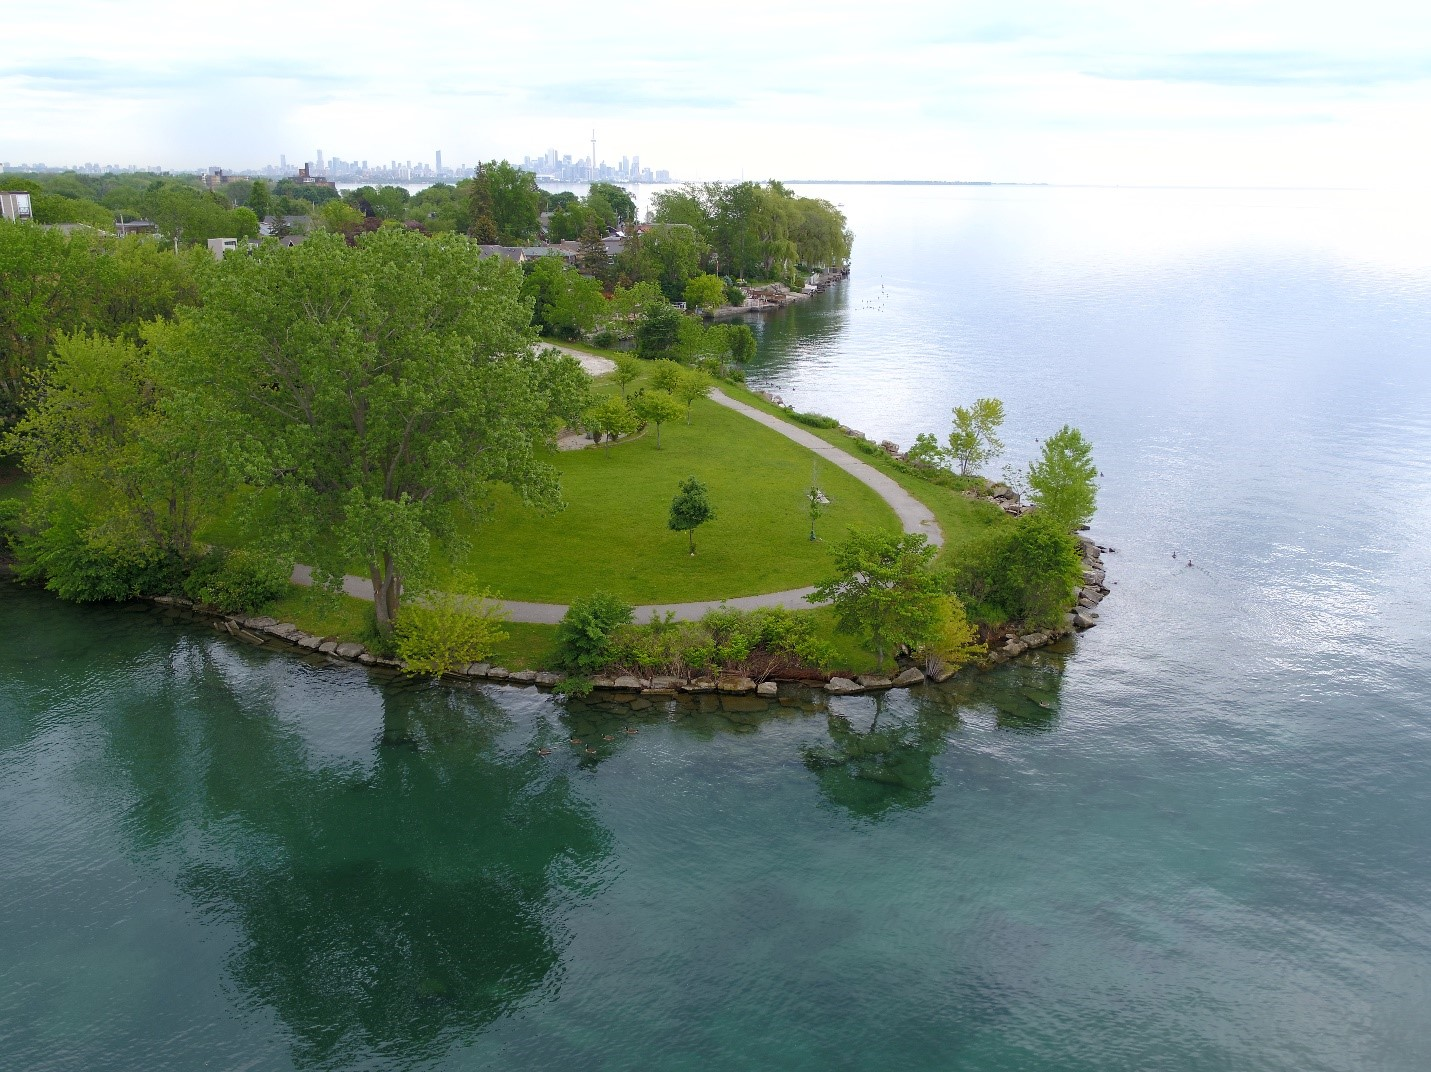 Record high water level of Lake Ontario in June 2017, causing further erosion of the Rotary Peace Park headland. Source: TRCA, 2017.